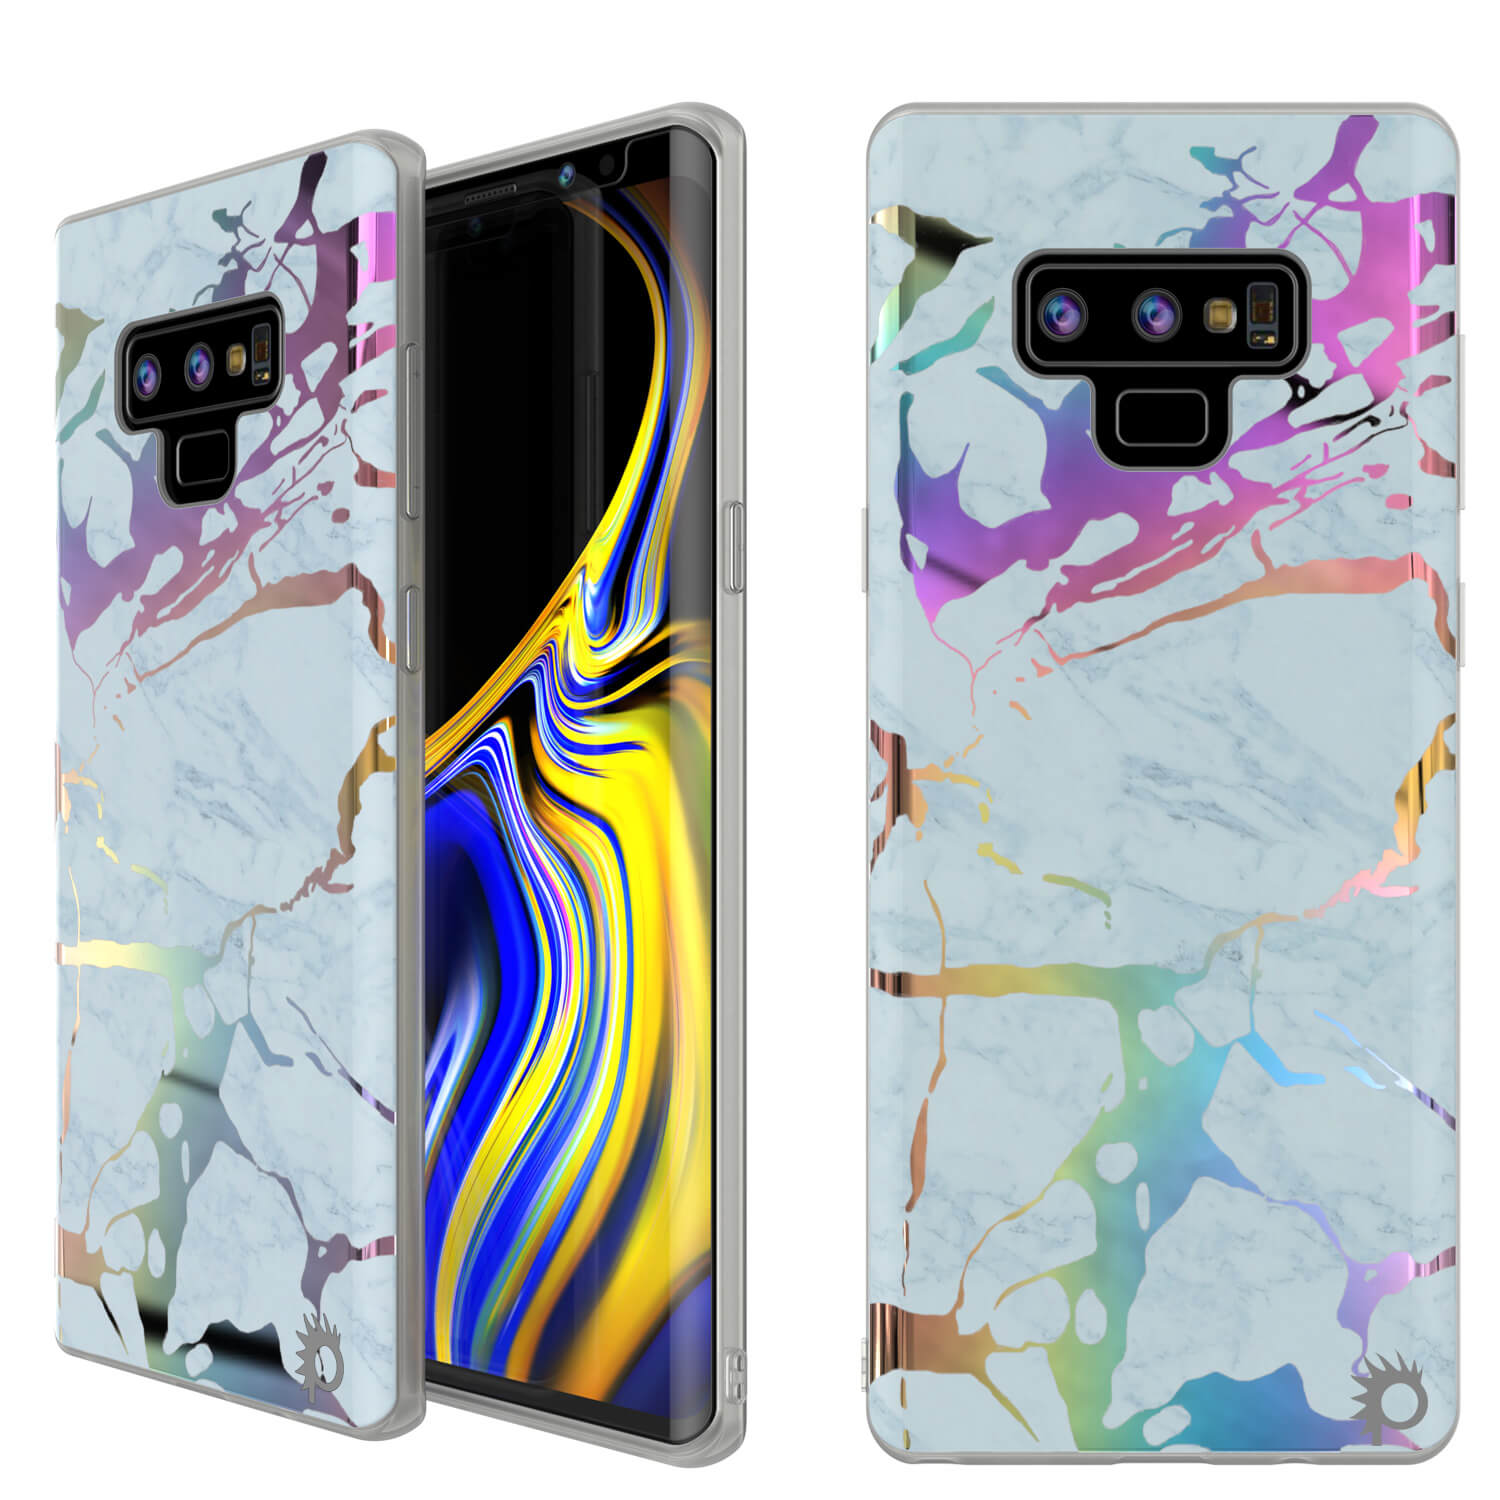 Galaxy Note 9 Full Body W/ Screen Protector Marble Case (Blue Marmo)